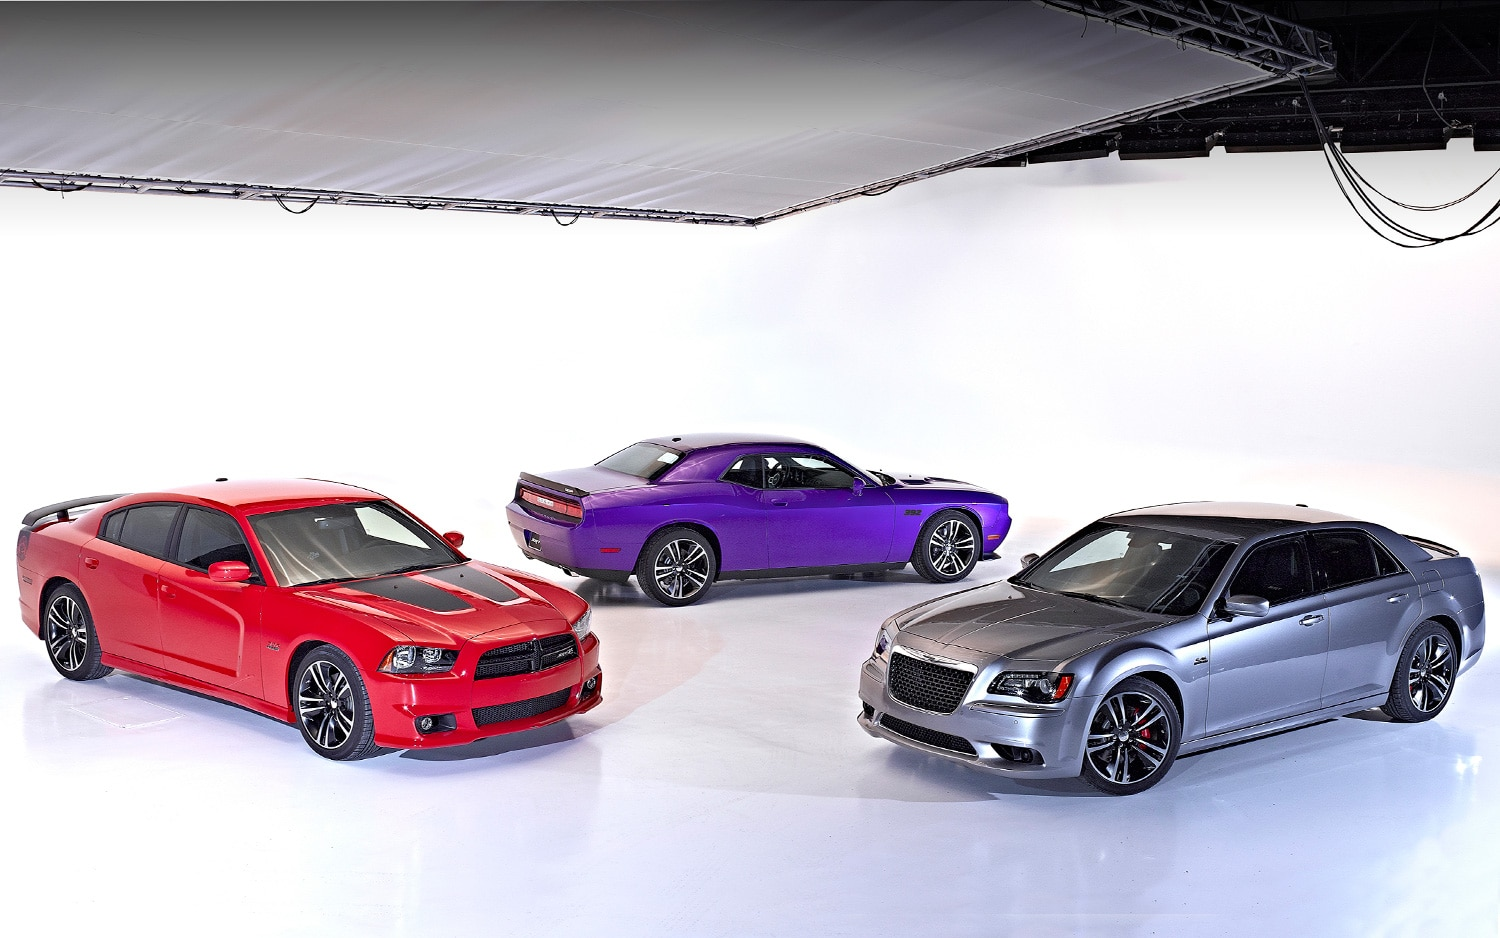 2013 Chrysler Dodge SRT8 Super Bee Core Models1